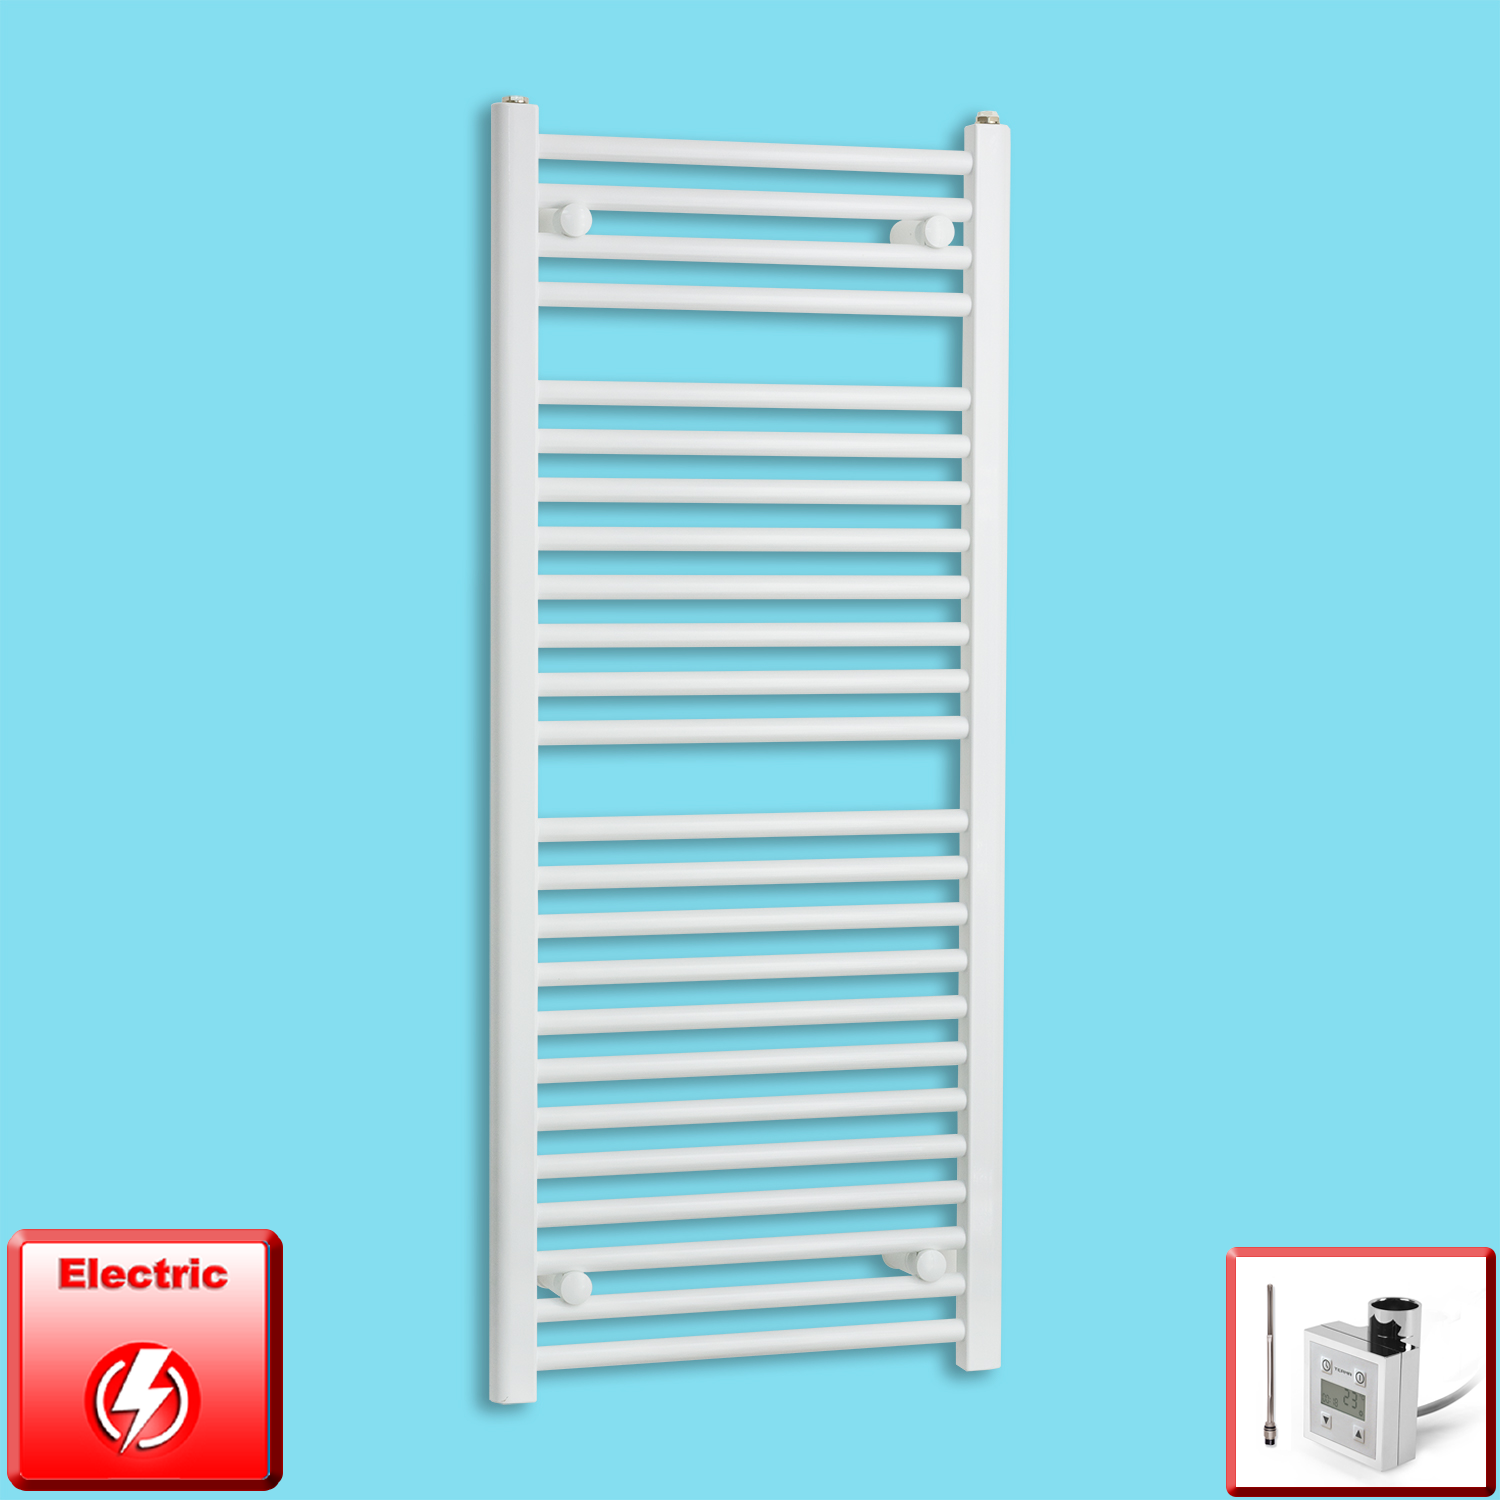 500mm Wide 1200mm High Flat White Pre-Filled Electric Heated Towel Rail Radiator HTR,KTX-3 Thermostatic Element